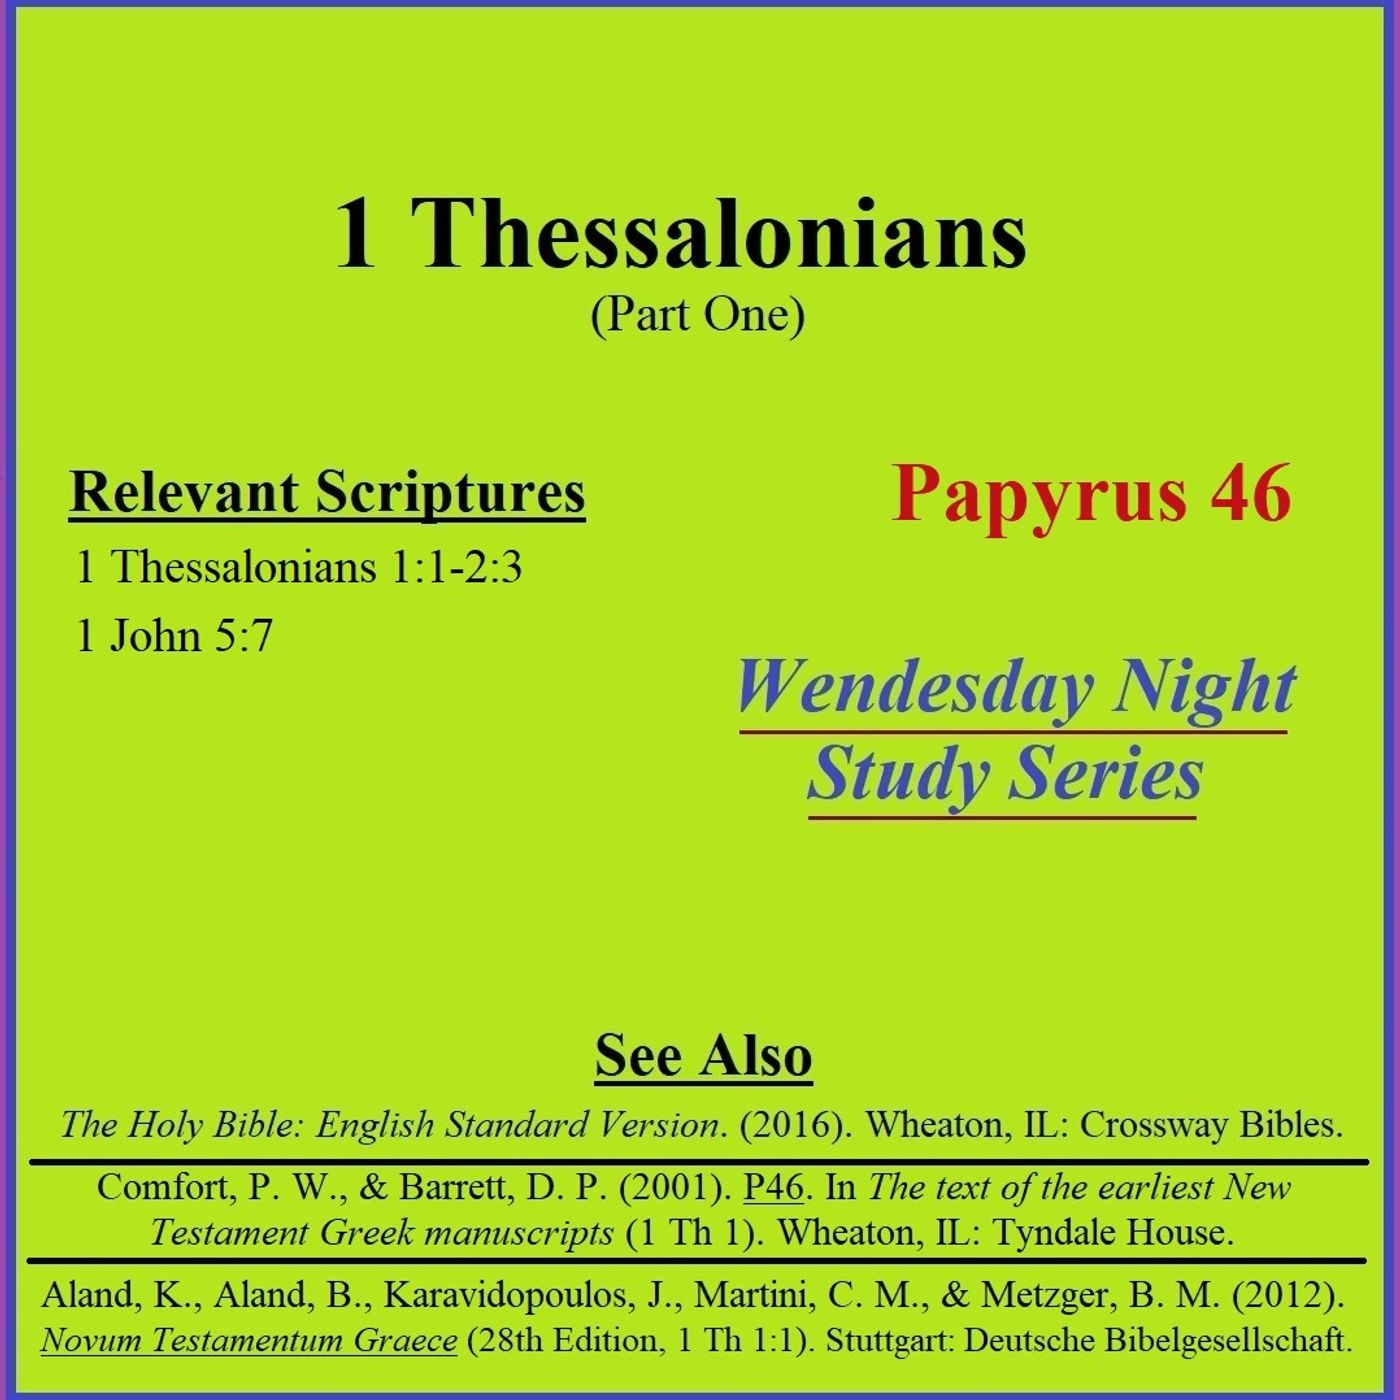 Wednesday Night Study Series - 1 Thessalonians Part 1 - Papyrus 46, Trinity, Oldest Evidence